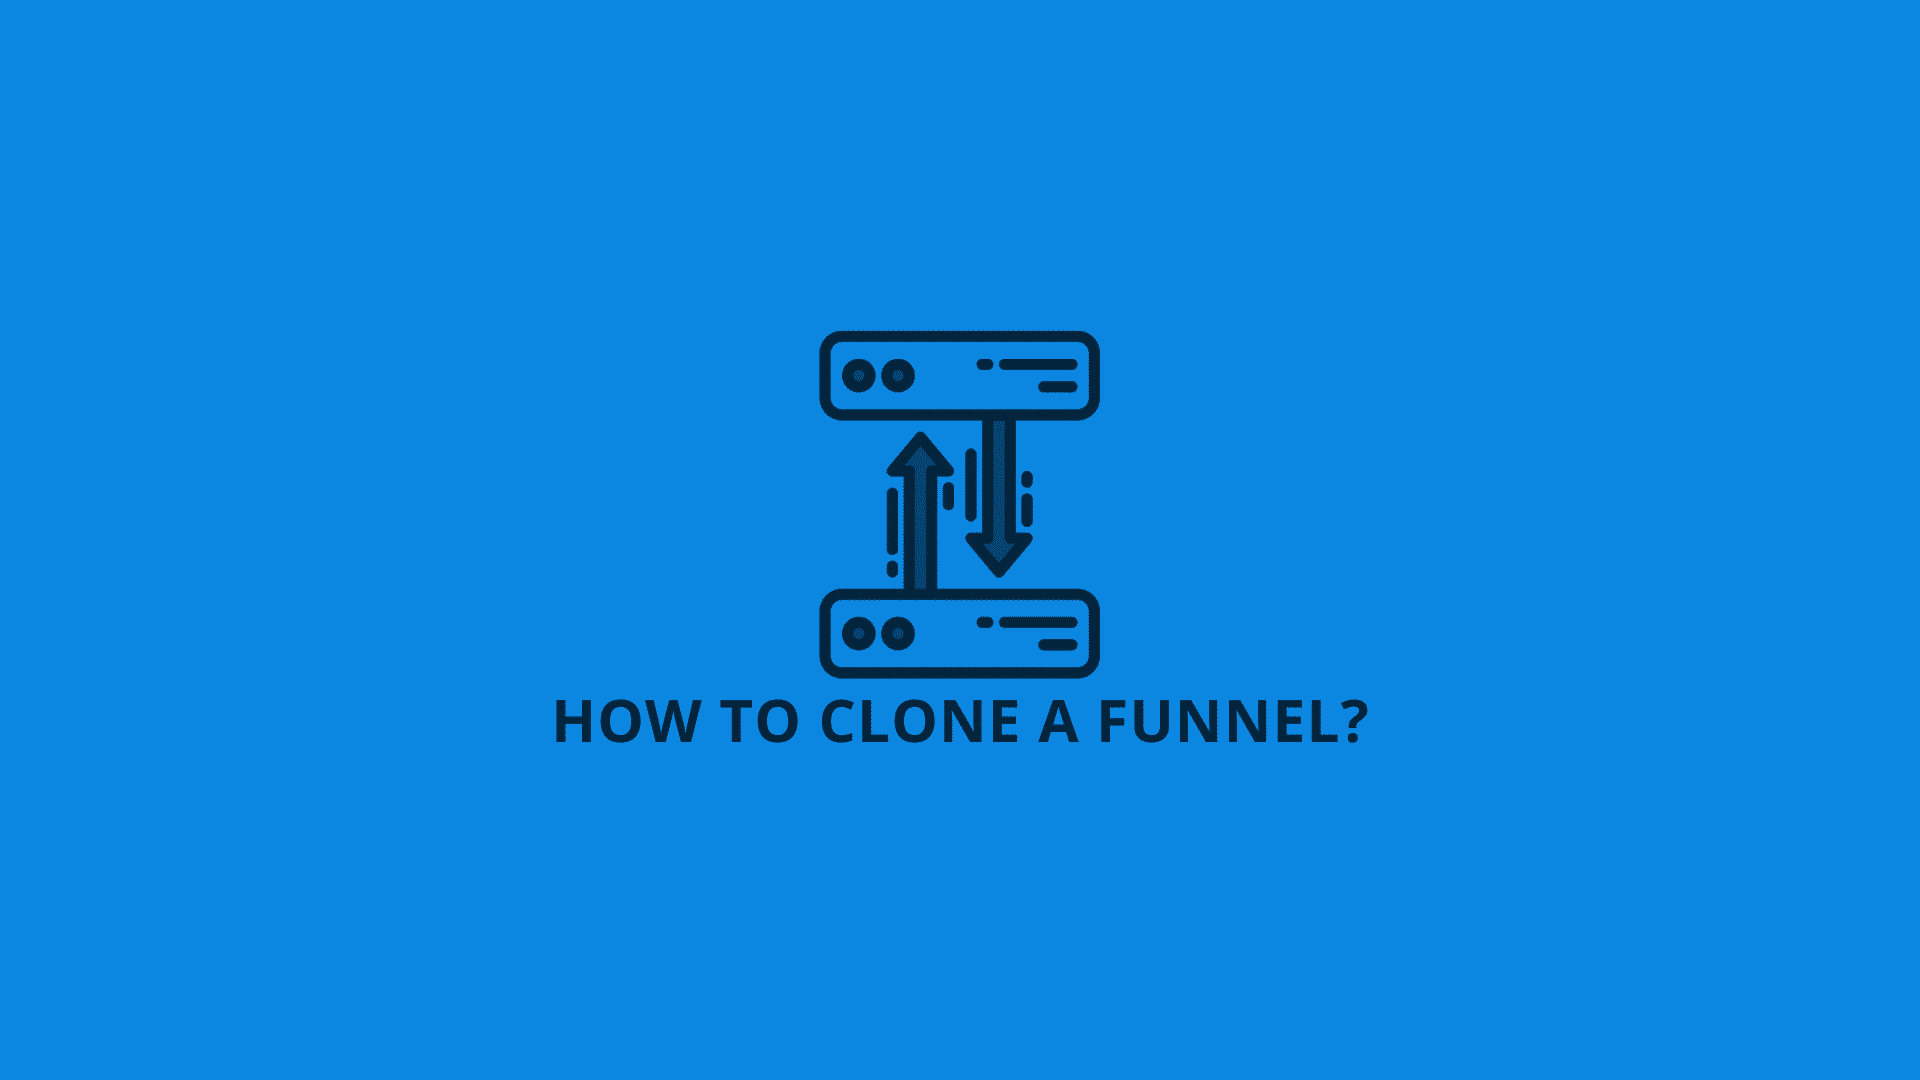 how to clone a funnel?